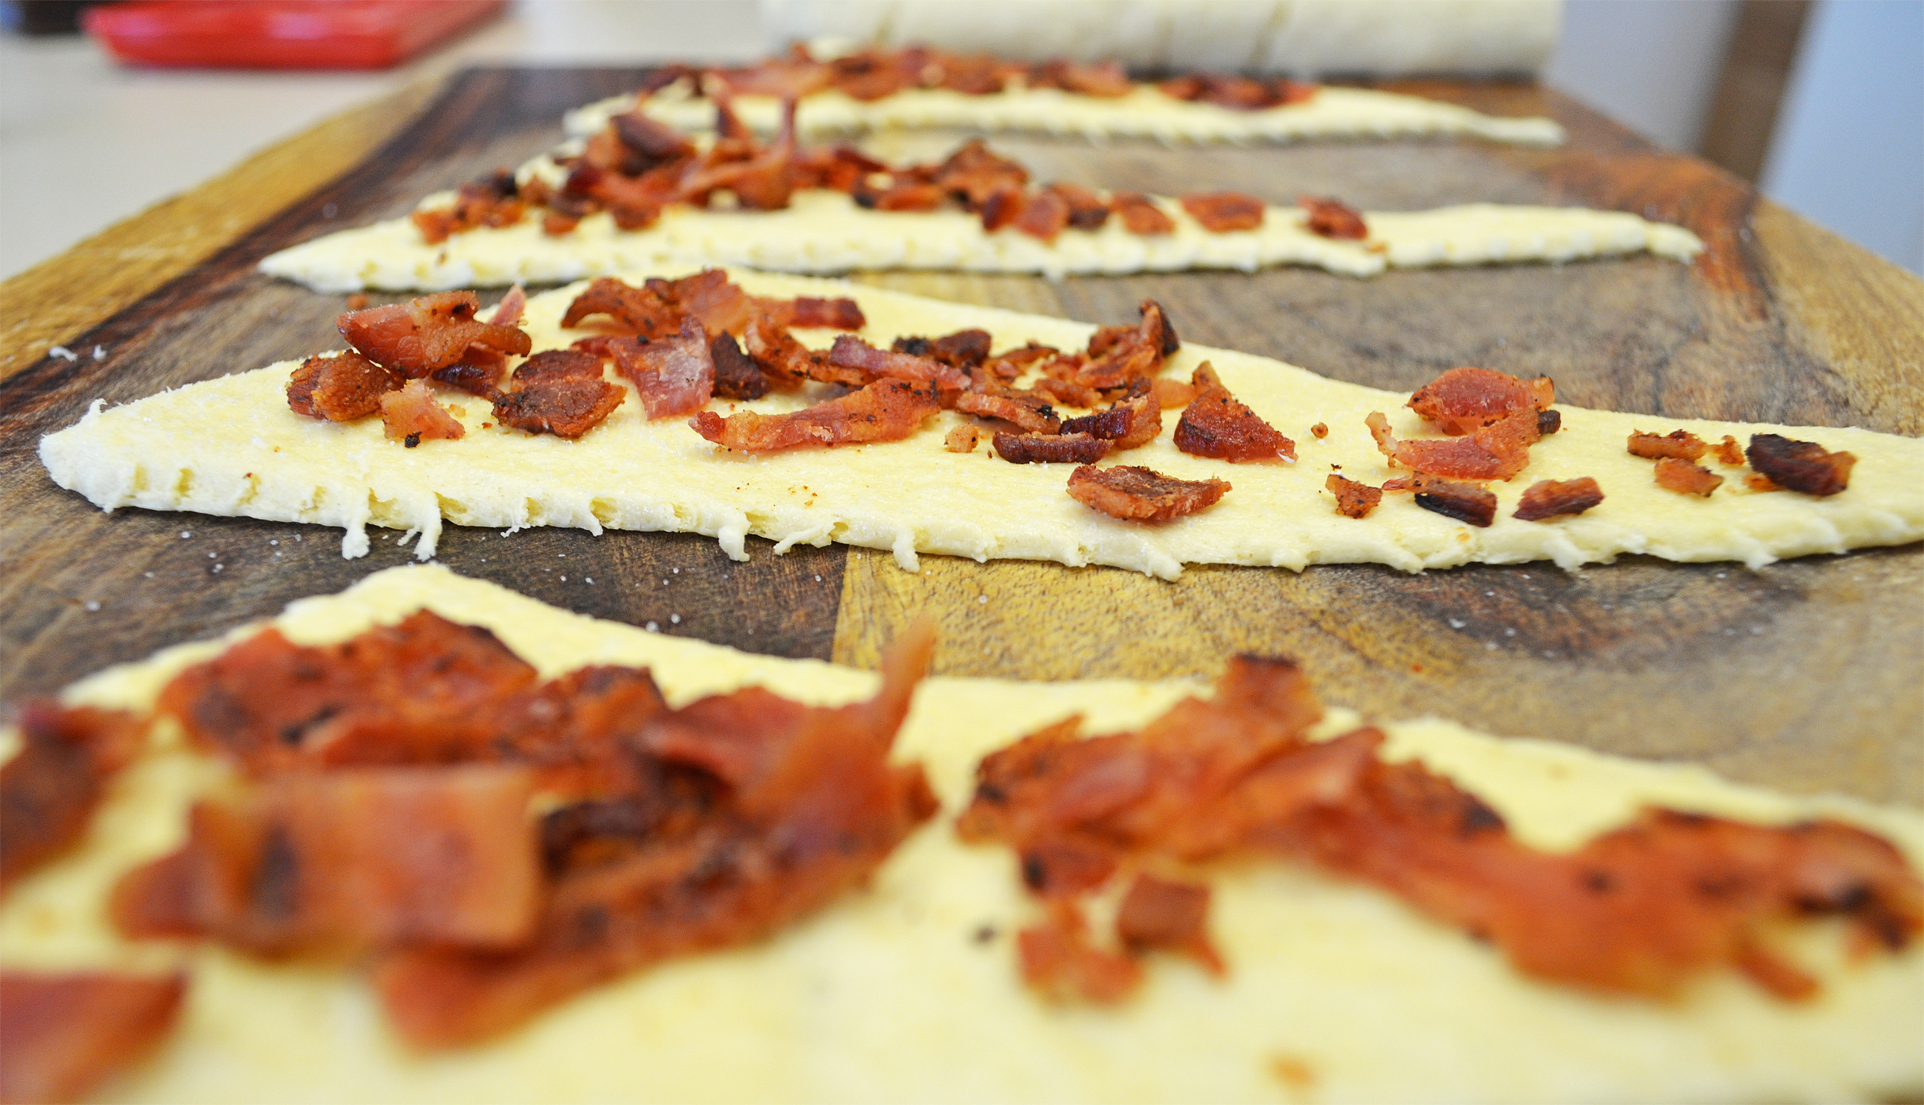 Take ⅛ of your crumbled bacon and sprinkle on each dough triangle ...